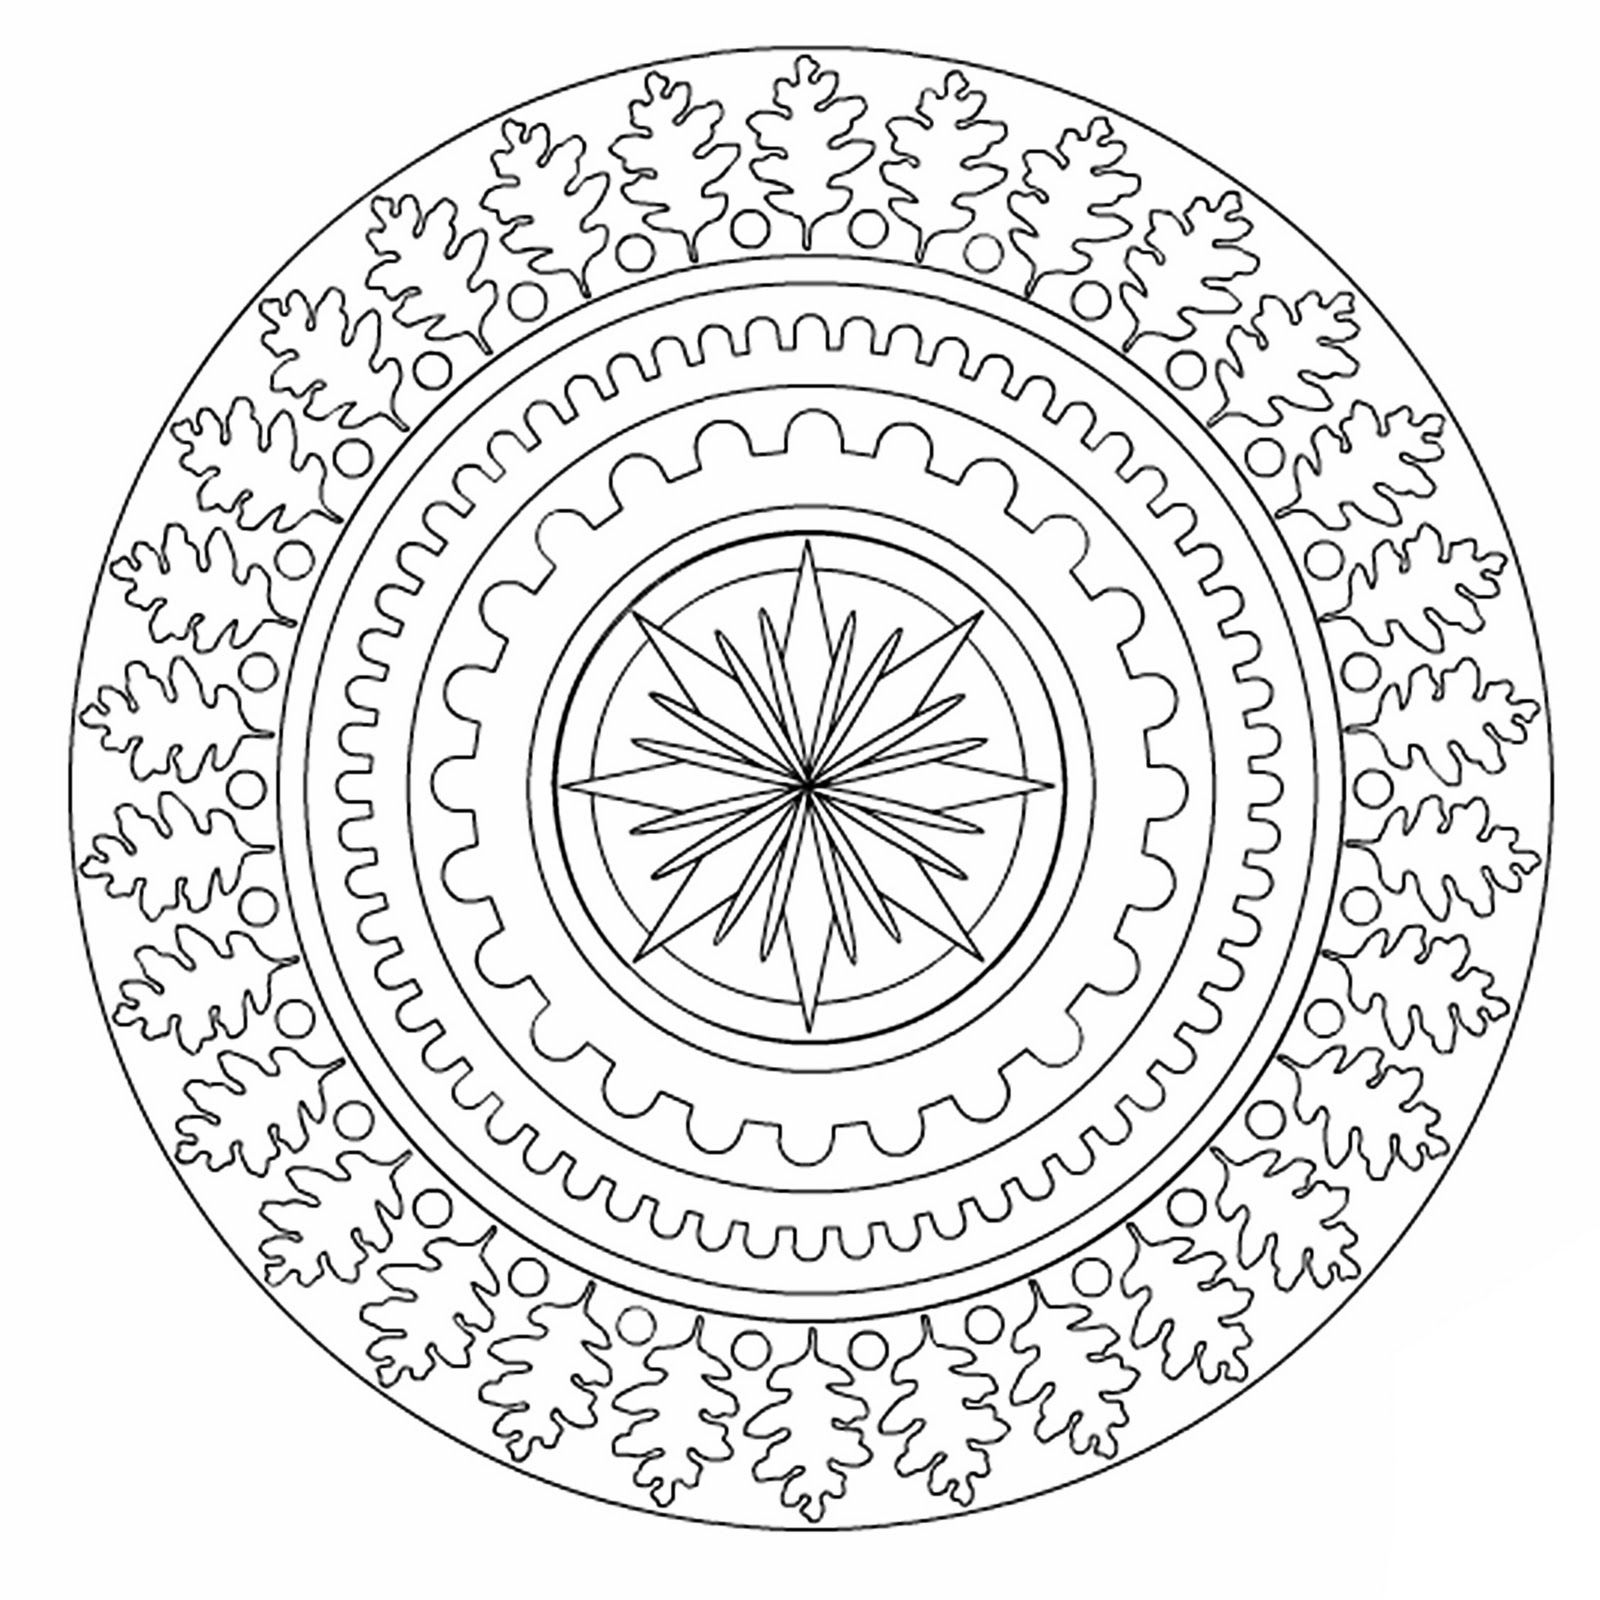 search of mandala patterns on google shows yields dozens of results